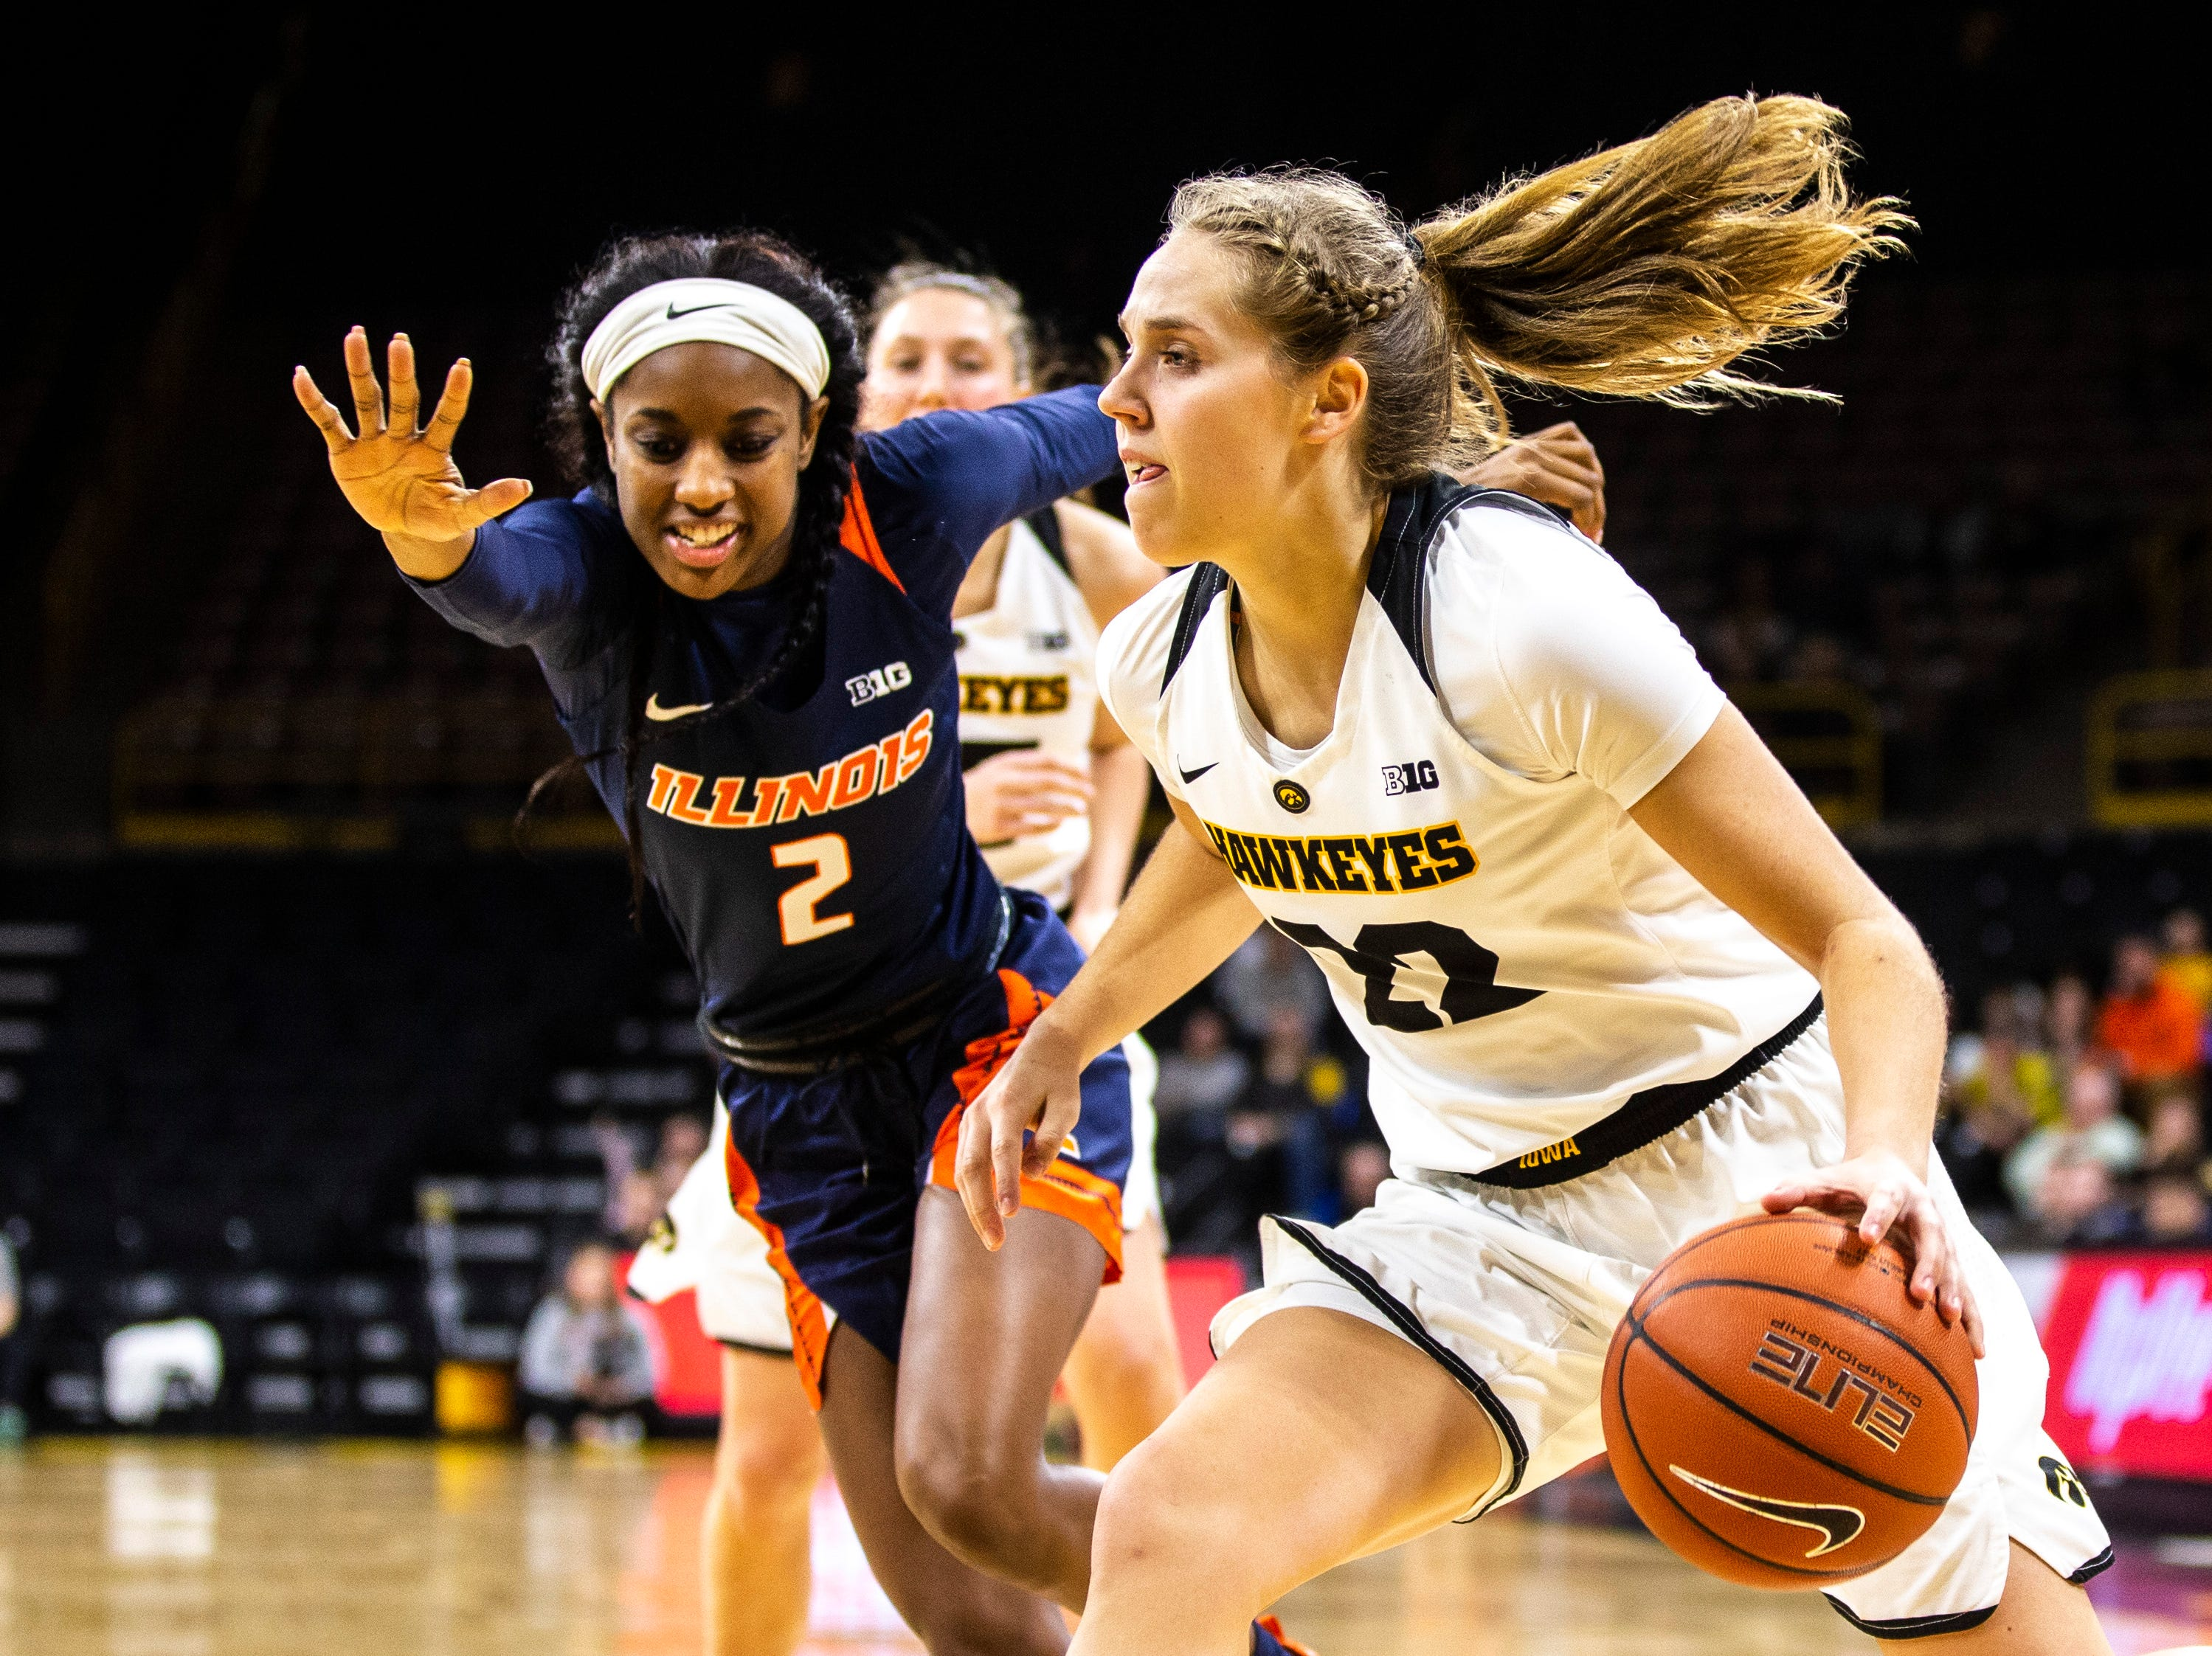 Iowa guard Kathleen Doyle (22) drives to the basket while Illinois forward Lyric Robins (2) defends during a NCAA Big Ten Conference women's basketball game on Thursday, Feb. 14, 2019 at Carver-Hawkeye Arena in Iowa City, Iowa.